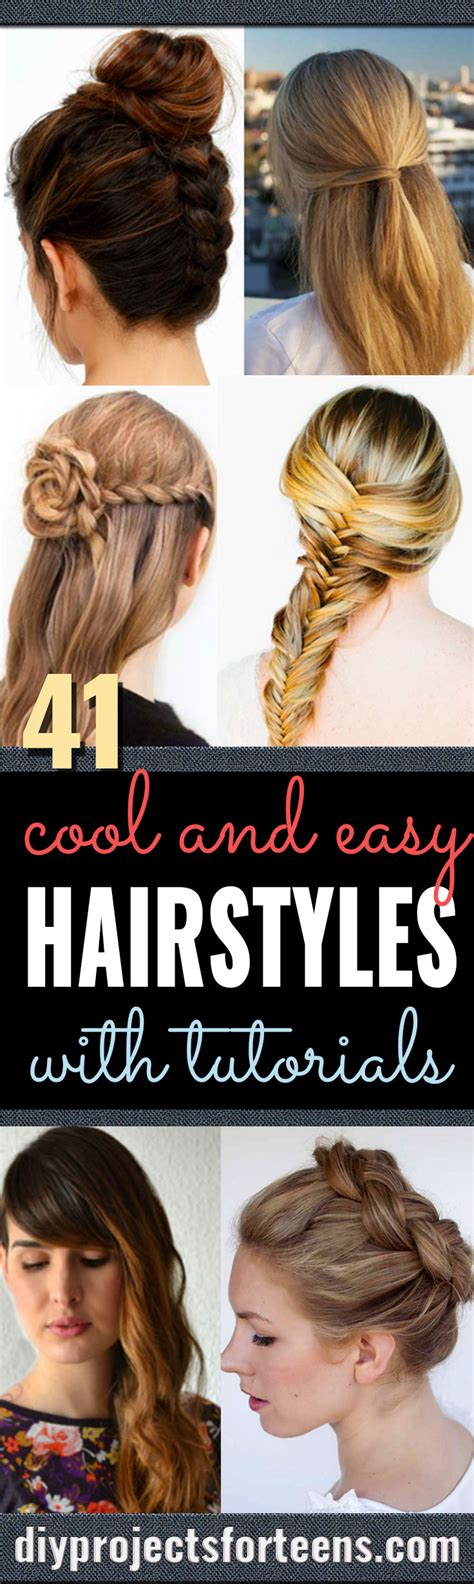 diy back to school hairstyles for medium hair 41 diy cool easy hairstyles that real people can actually